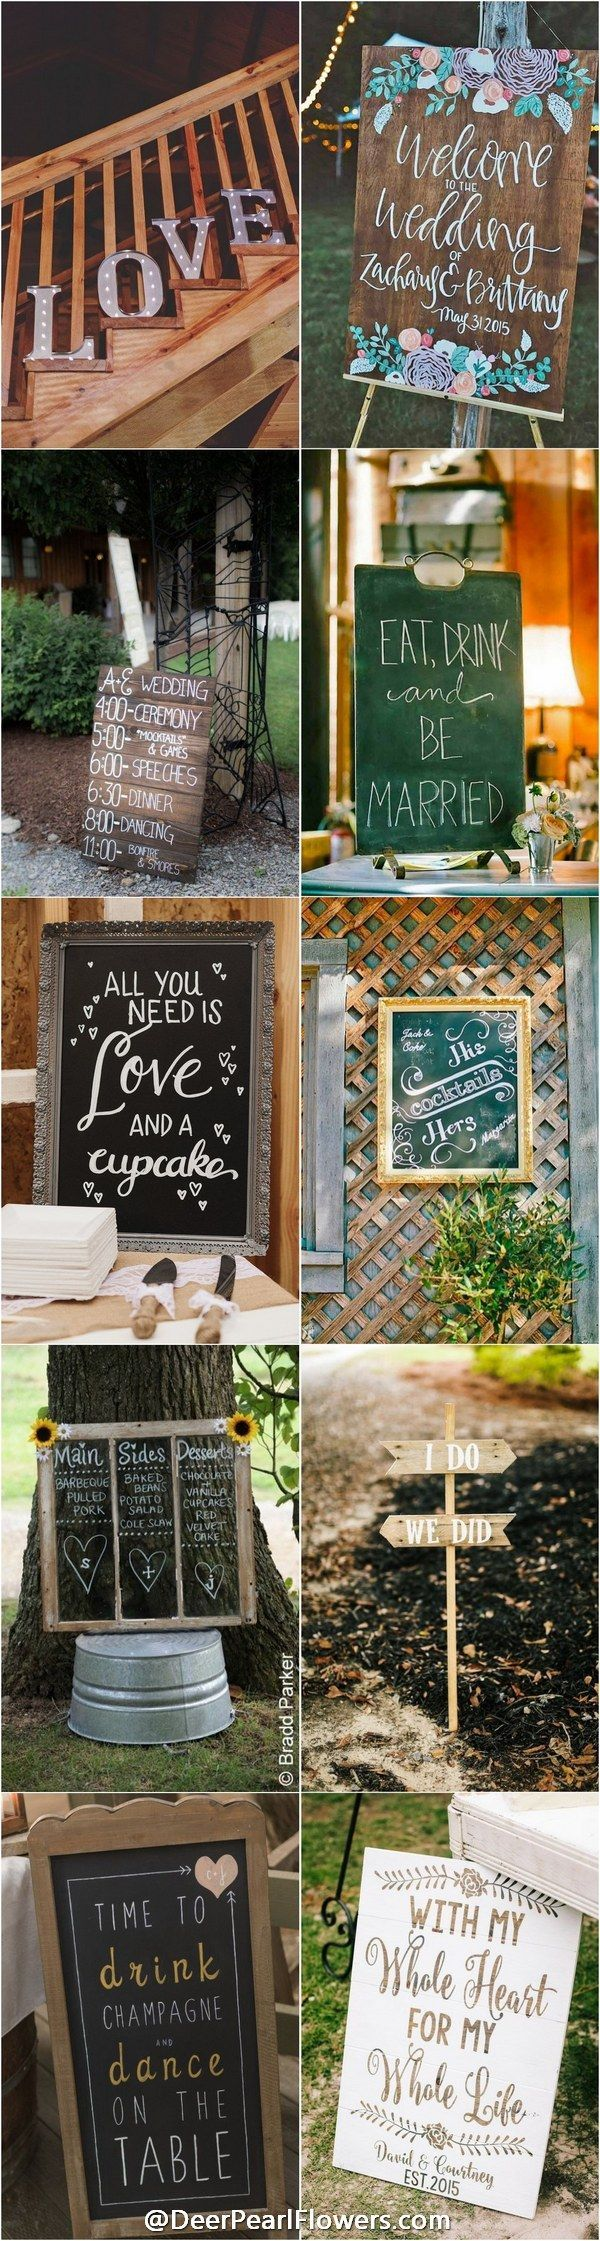 Rustic wedding signs / http://www.deerpearlflowers.com/30-rustic-wedding-signs-ideas-for-weddings/